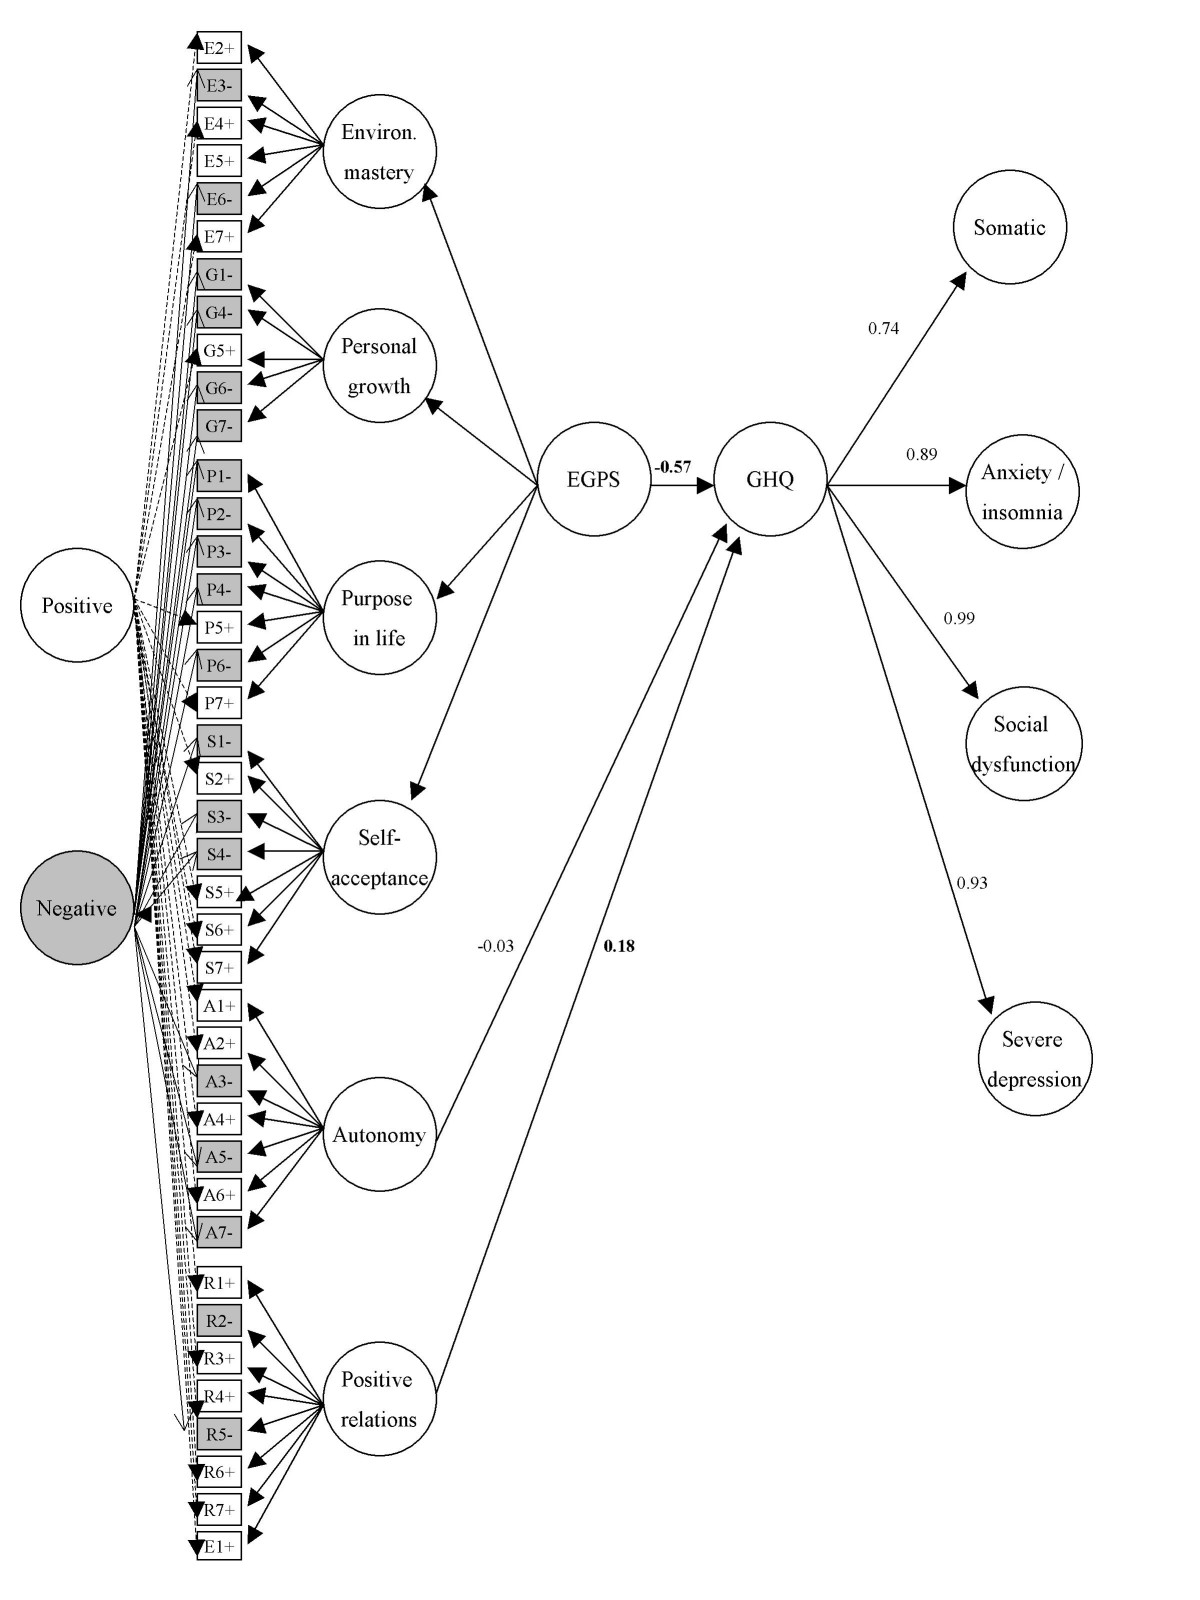 https://static-content.springer.com/image/art%3A10.1186%2F1477-7525-4-76/MediaObjects/12955_2006_Article_310_Fig2_HTML.jpg